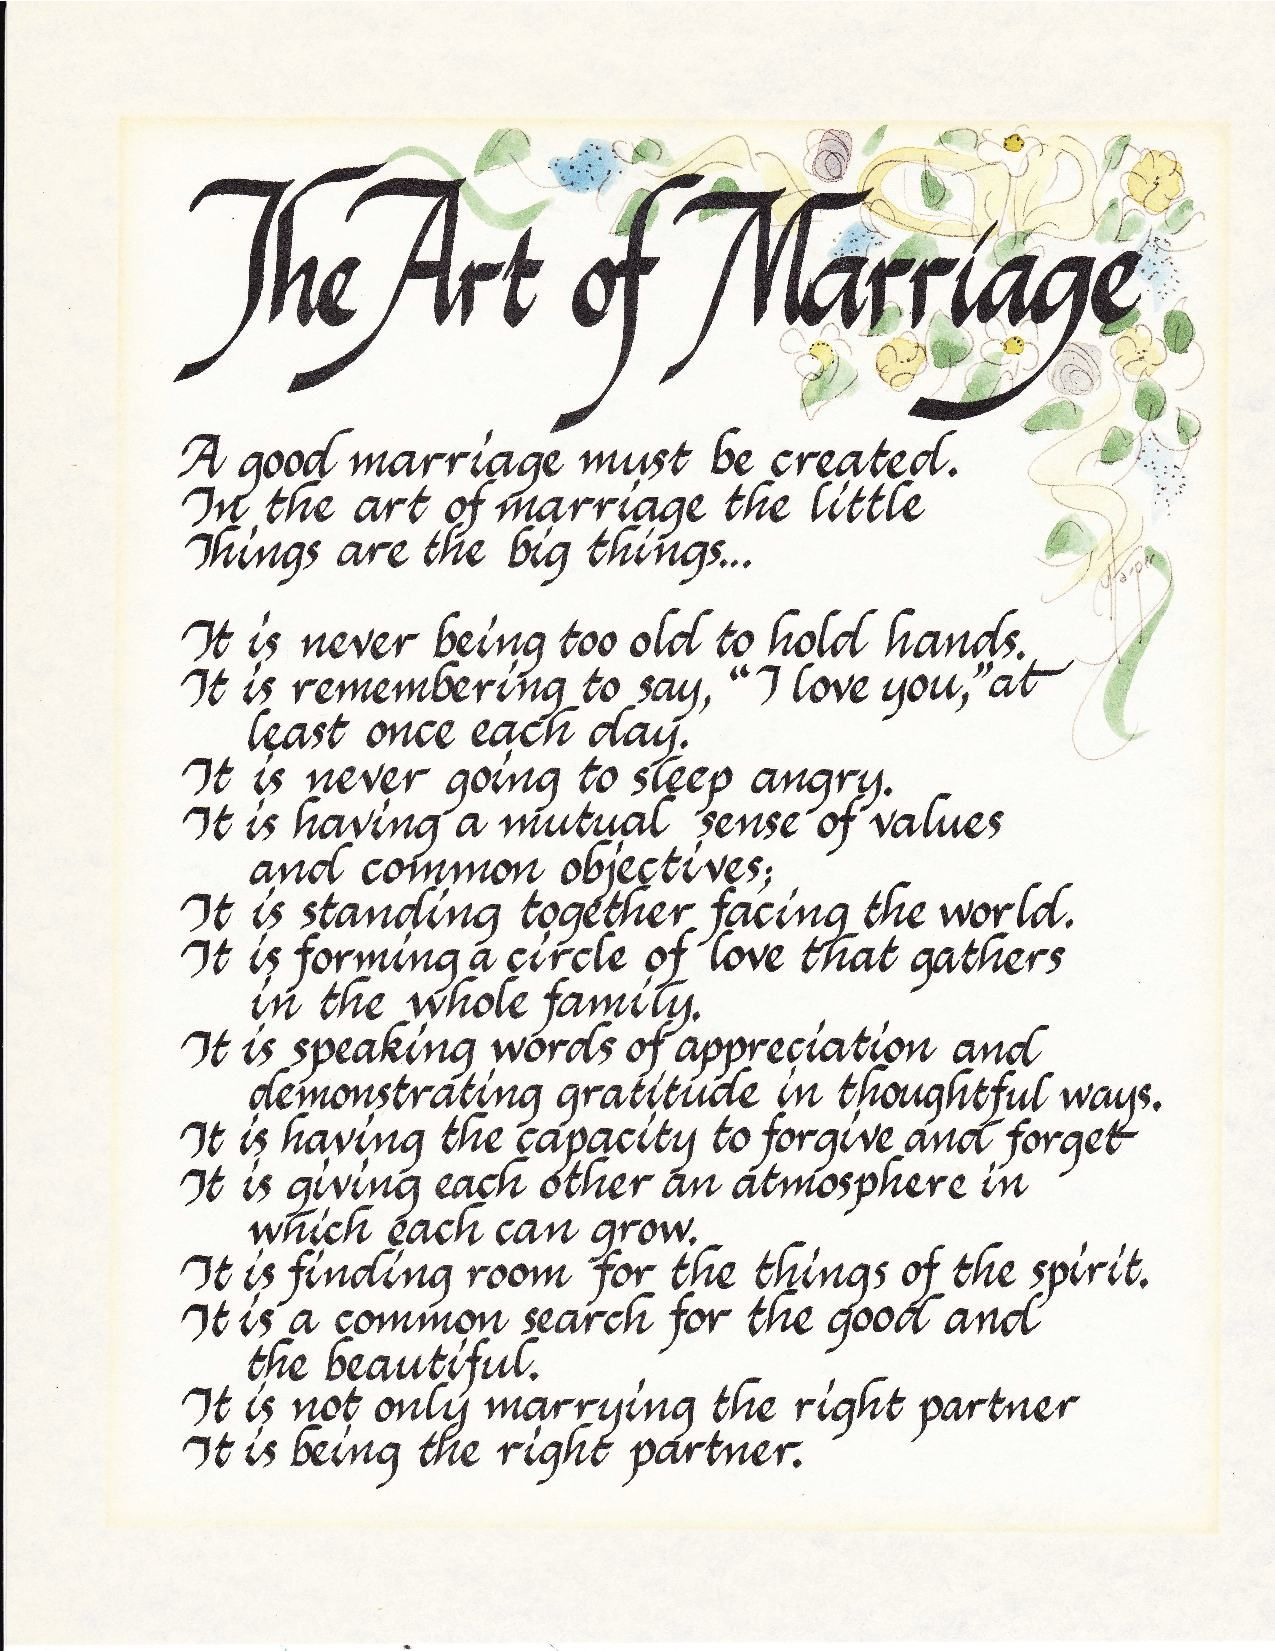 The Art Of Marriage Wedding Poems Marriage Poems The Art Of Marriage